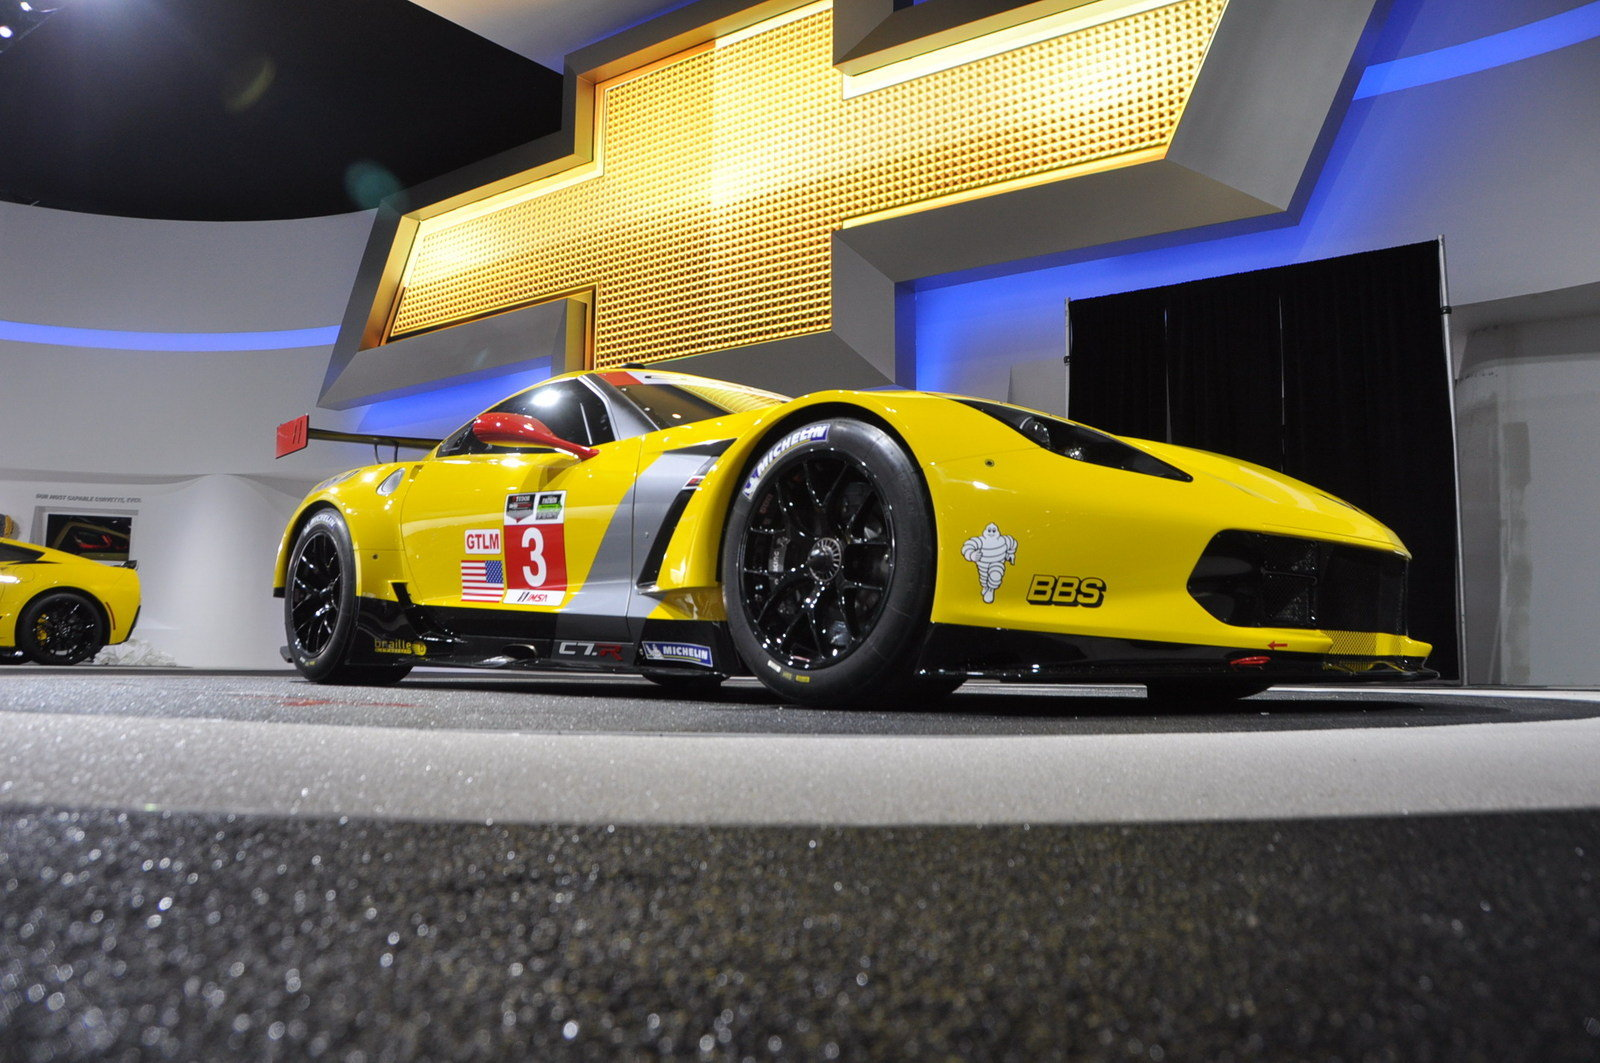 2014 chevrolet corvette c7 r picture 538448 car review top speed. Cars Review. Best American Auto & Cars Review